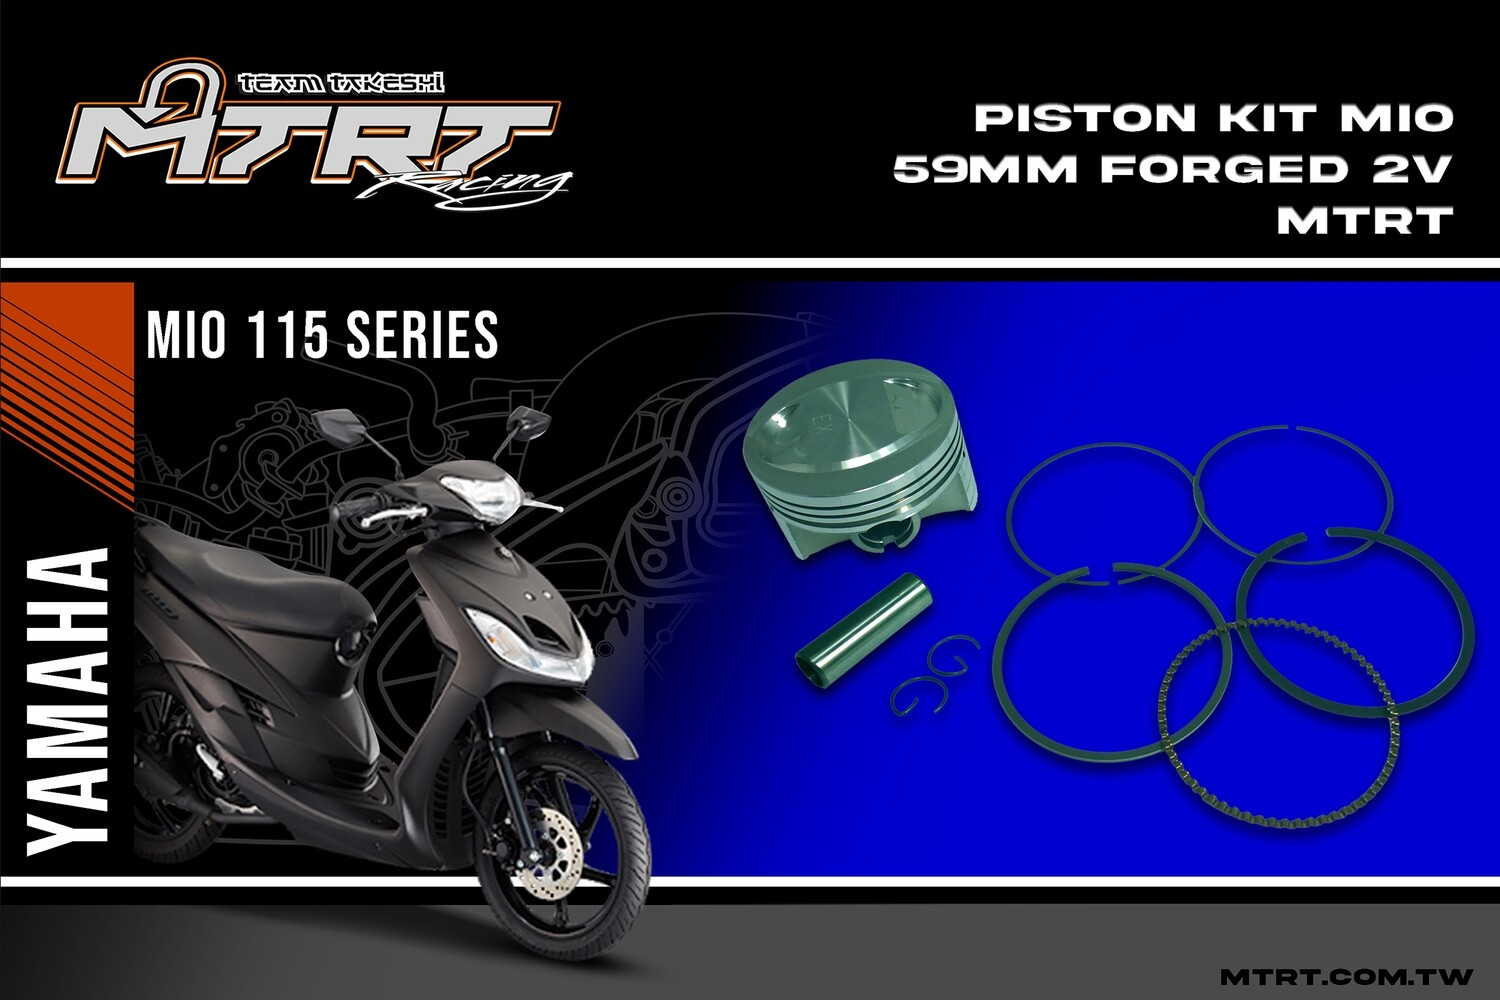 PISTON  KIT  MIO 59MM FORGED 2V MTRT